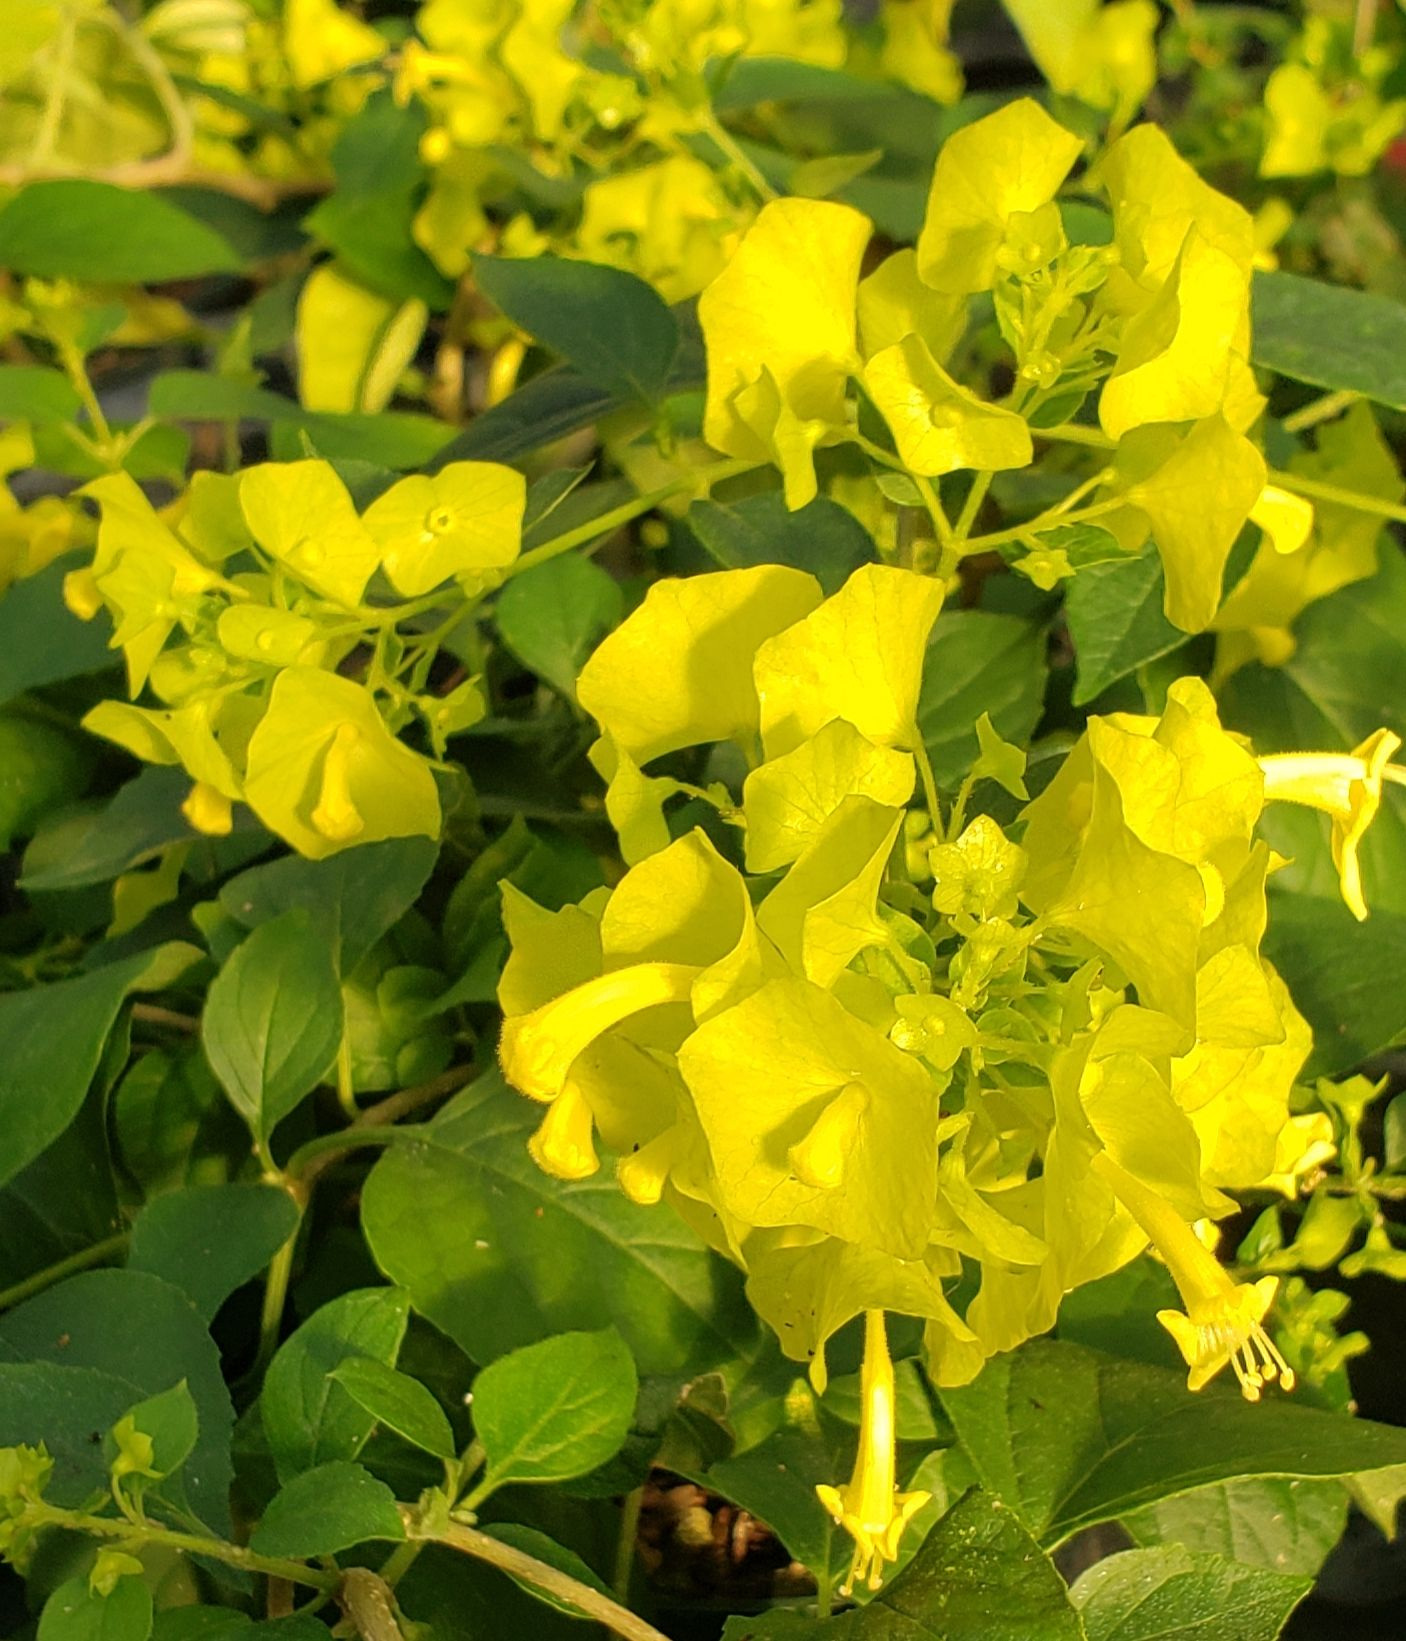 Yellow Chinese Hat Plant, Cup and Saucer Plant, Parasol Flower